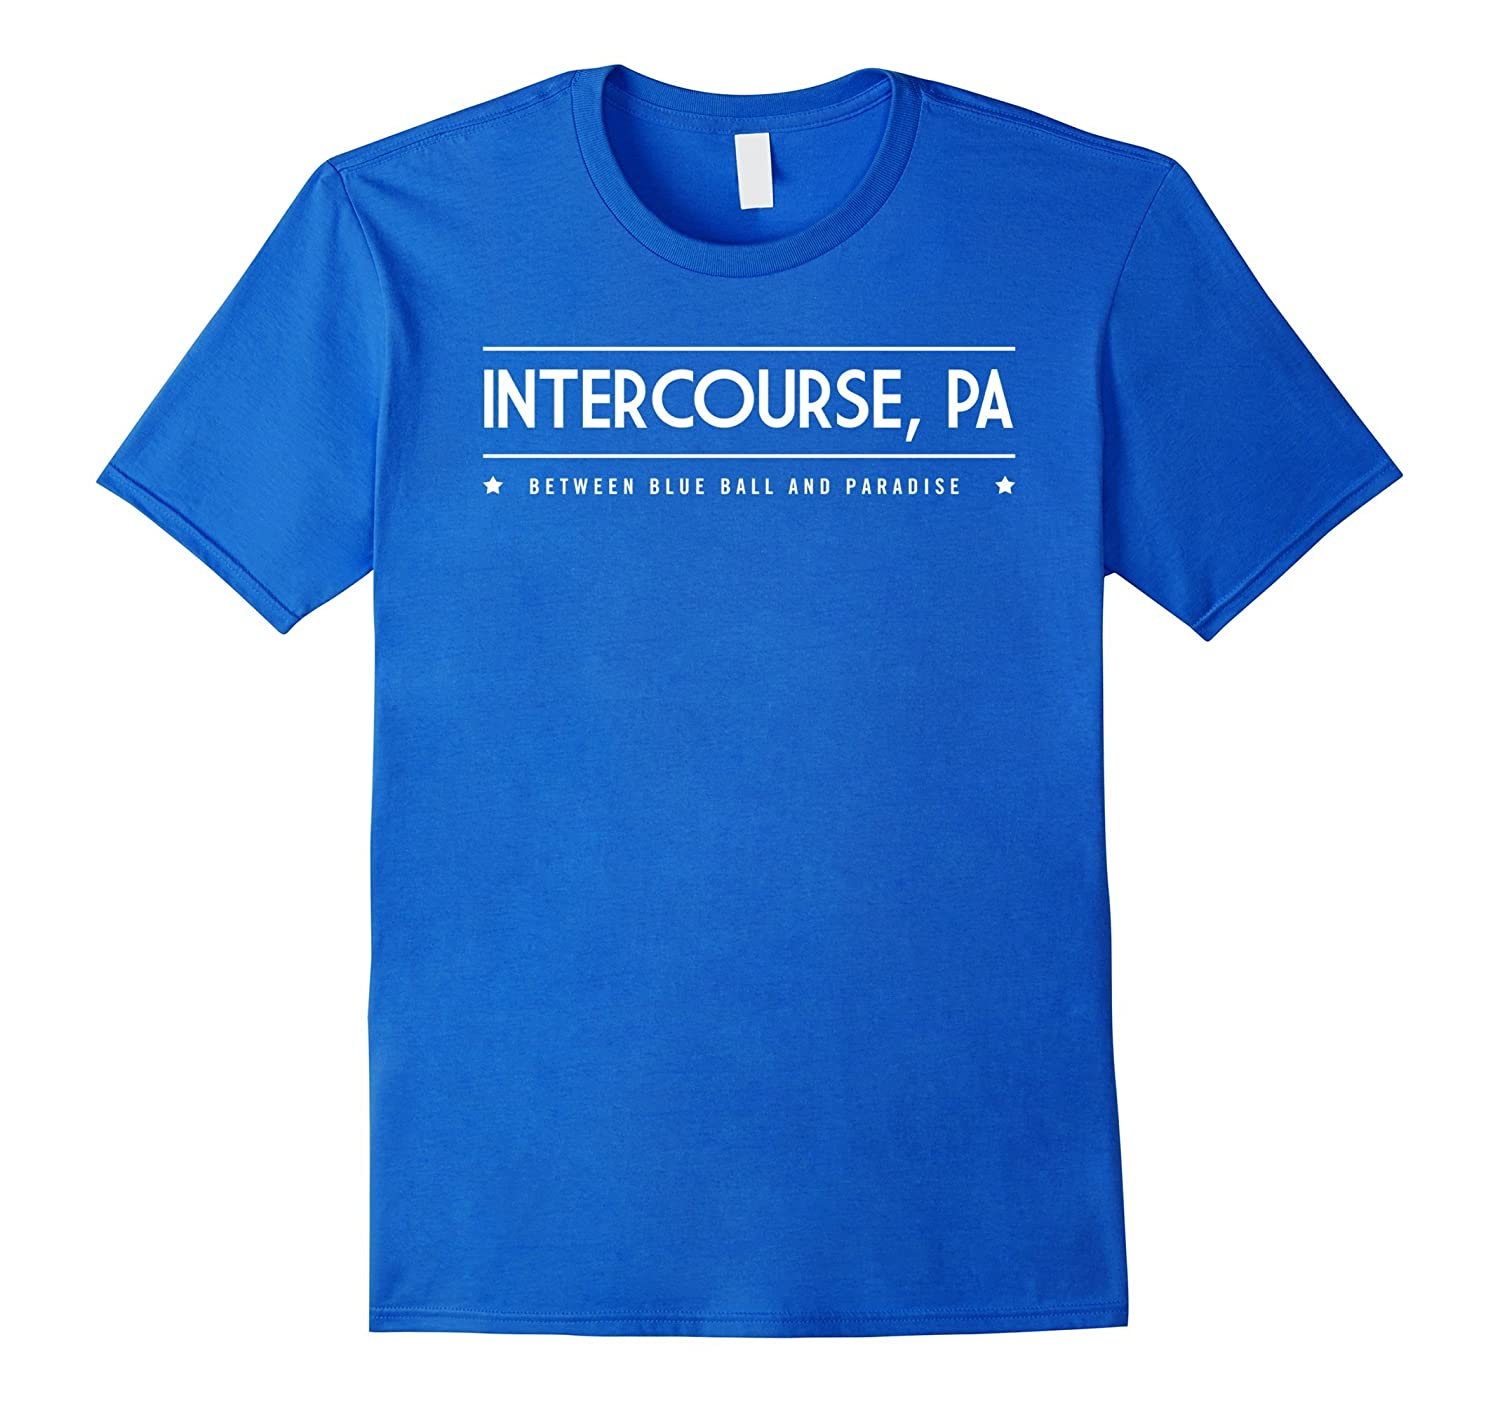 Intercourse PA T-Shirt Between Blue Ball and Paradise Tee-ah my shirt one gift